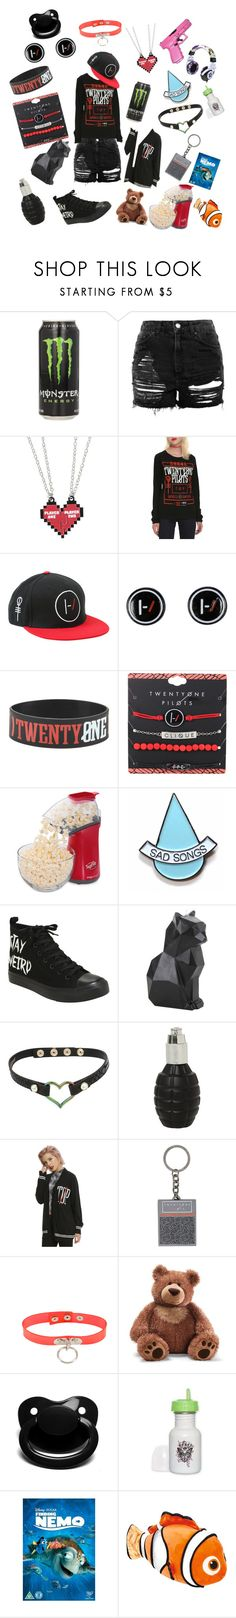 """""""21 pilots ❤️🖤"""" by rainythedarklord ❤ liked on Polyvore featuring Topshop, Hot Topic, Presto, Stay Home Club, Betsey Johnson, Gund and Disney Pixar Finding Dory"""